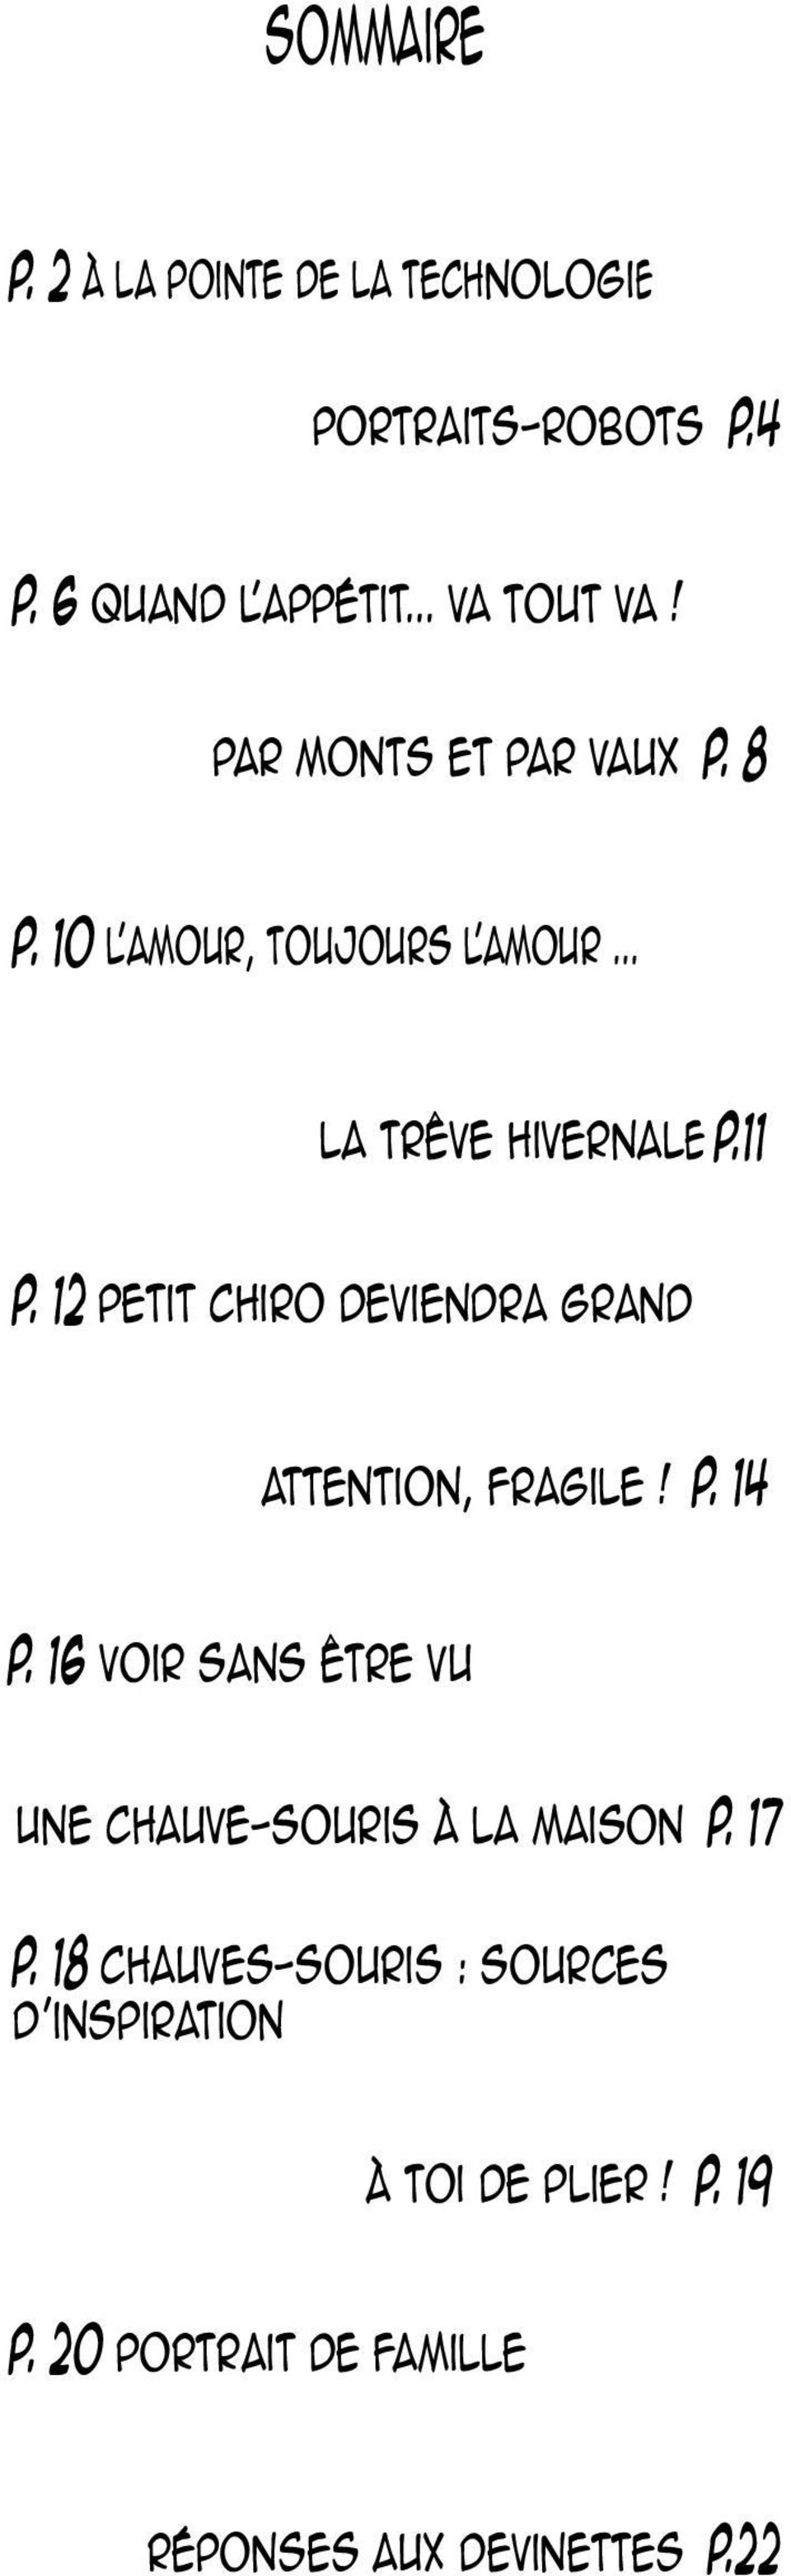 12 Petit chiro deviendra grand attention, fragile! P. 14 P.